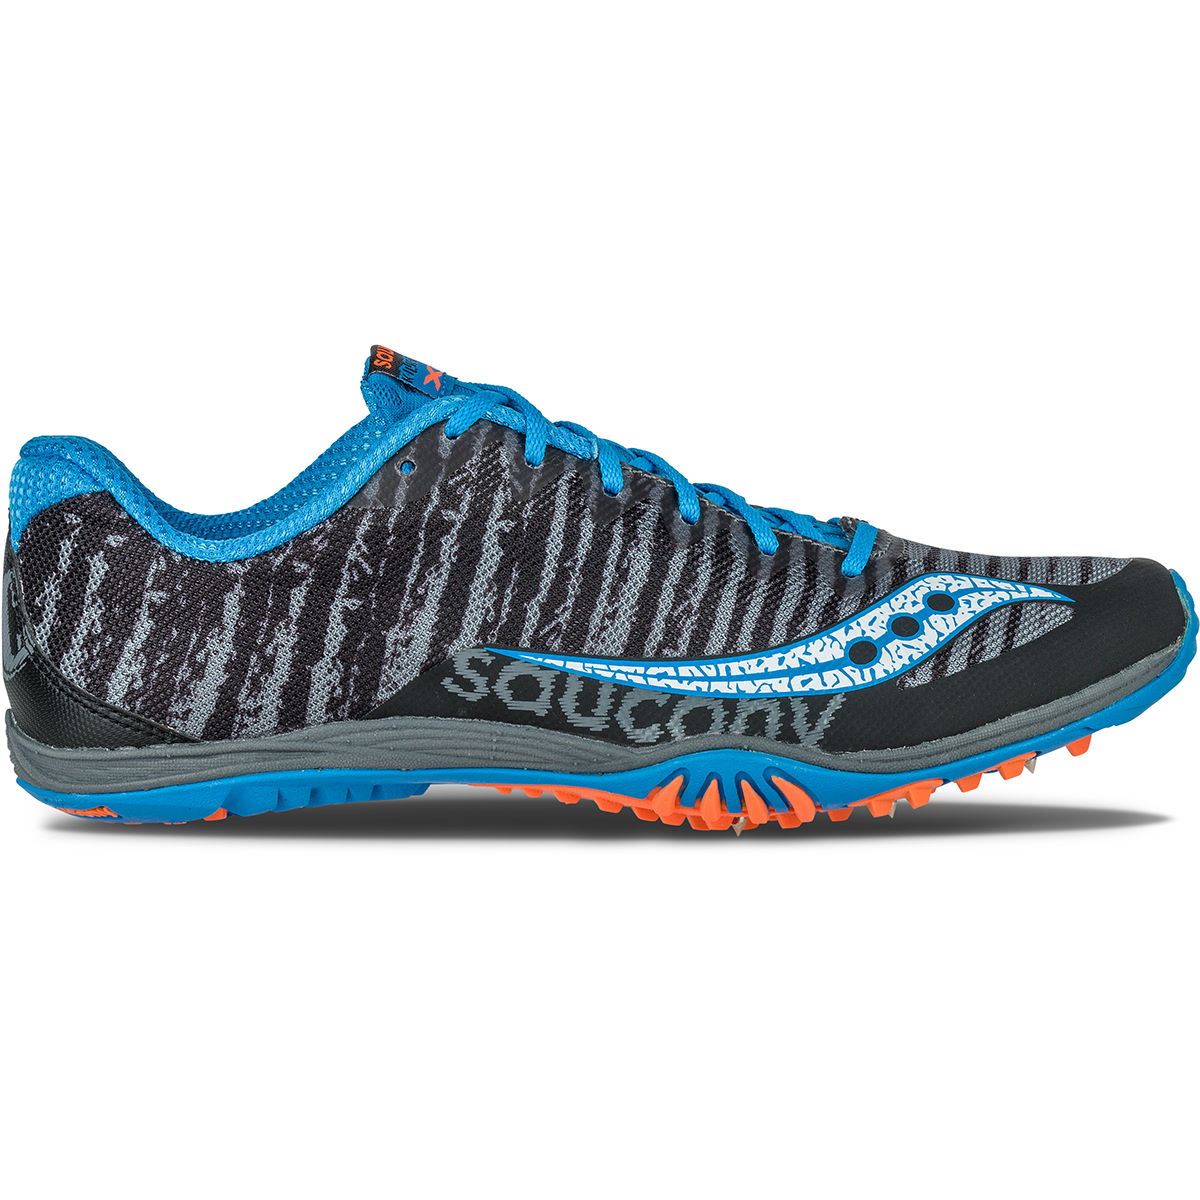 Chaussures de cross-country Saucony Kilkenny (AH16) - 5,5 UK Black/Carolina Chaussures de running à pointes